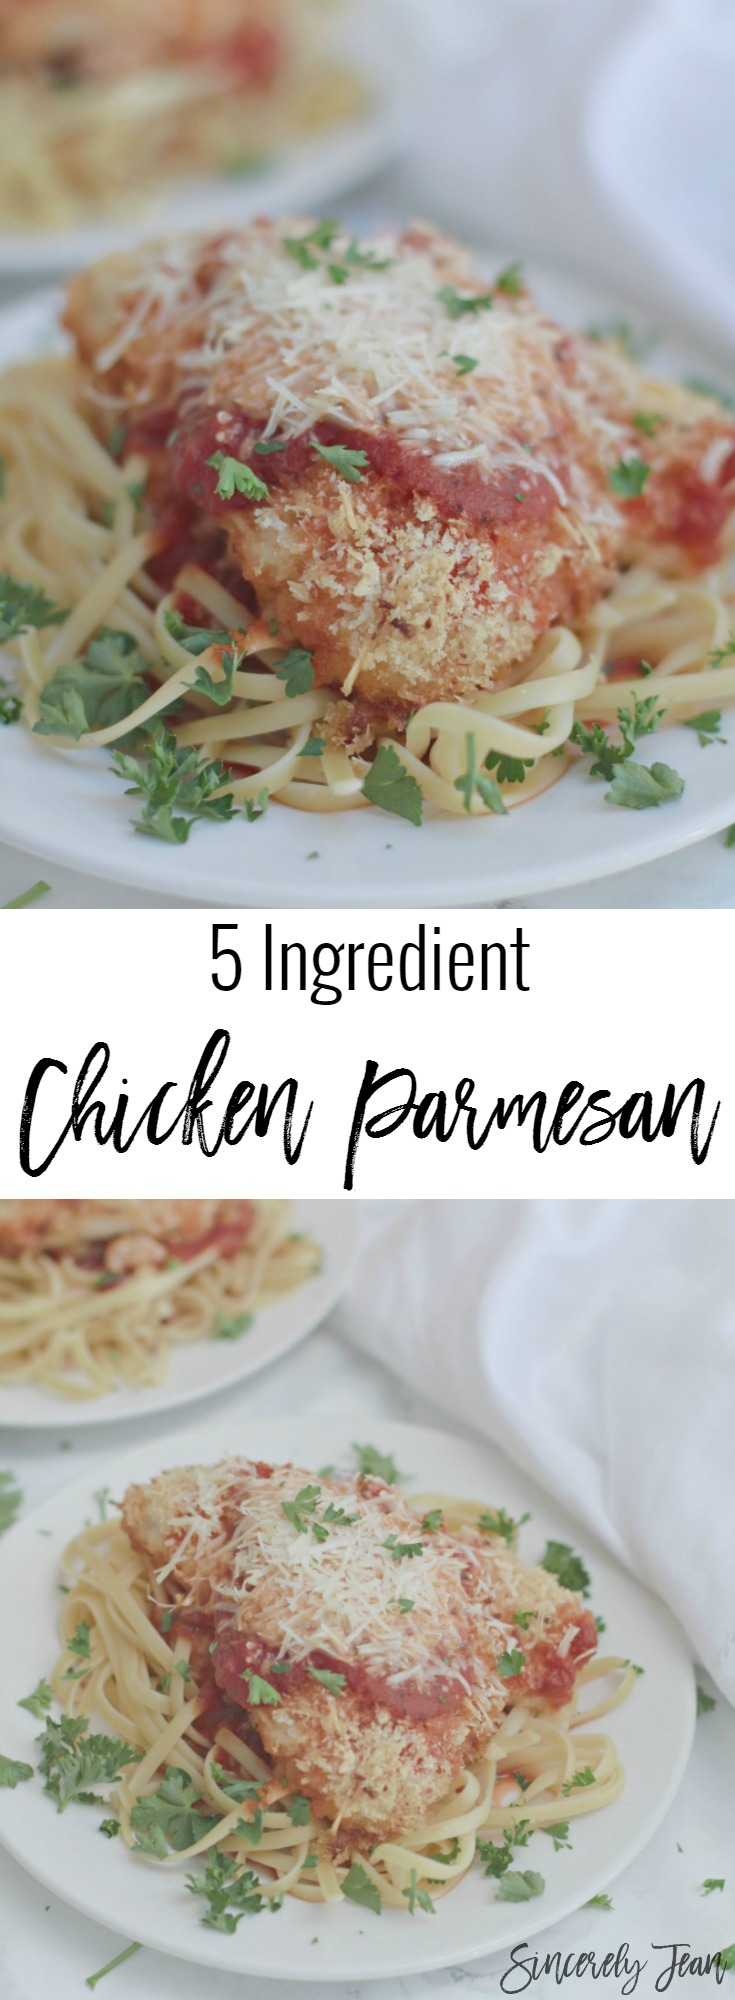 Healthy Chicken Parmesan - Chicken Parmesan - 5 Ingredient Dinner Recipe - Baked Chicken Parmesan - Chicken Parmesan recipe | www.SincerelyJean.com